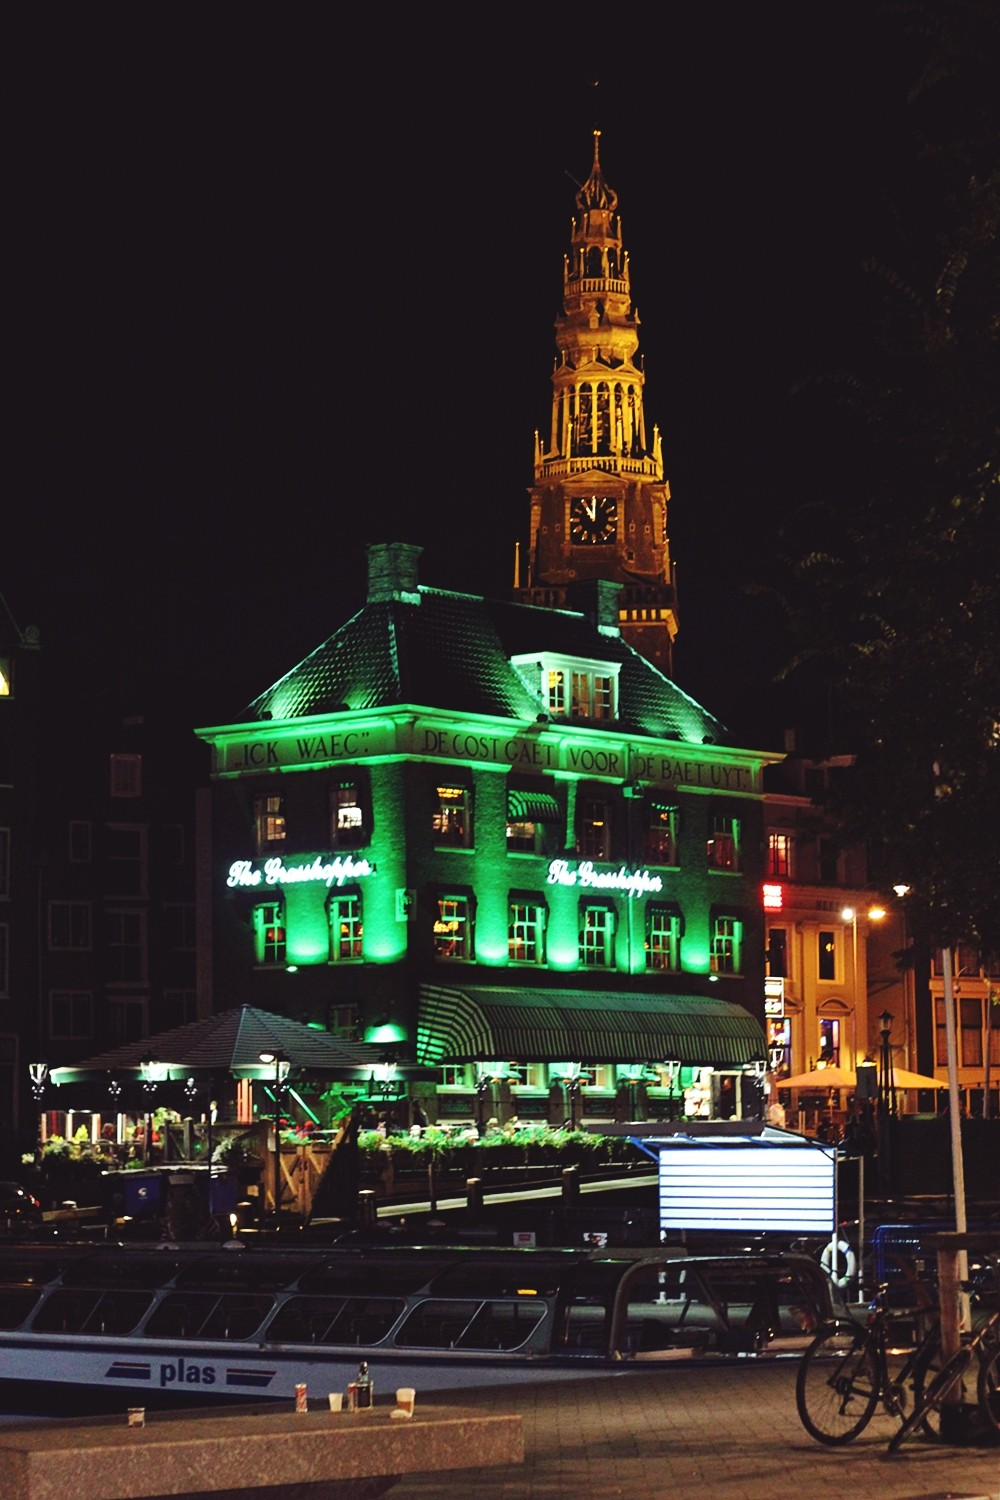 Grasshopper Amsterdam at night 2